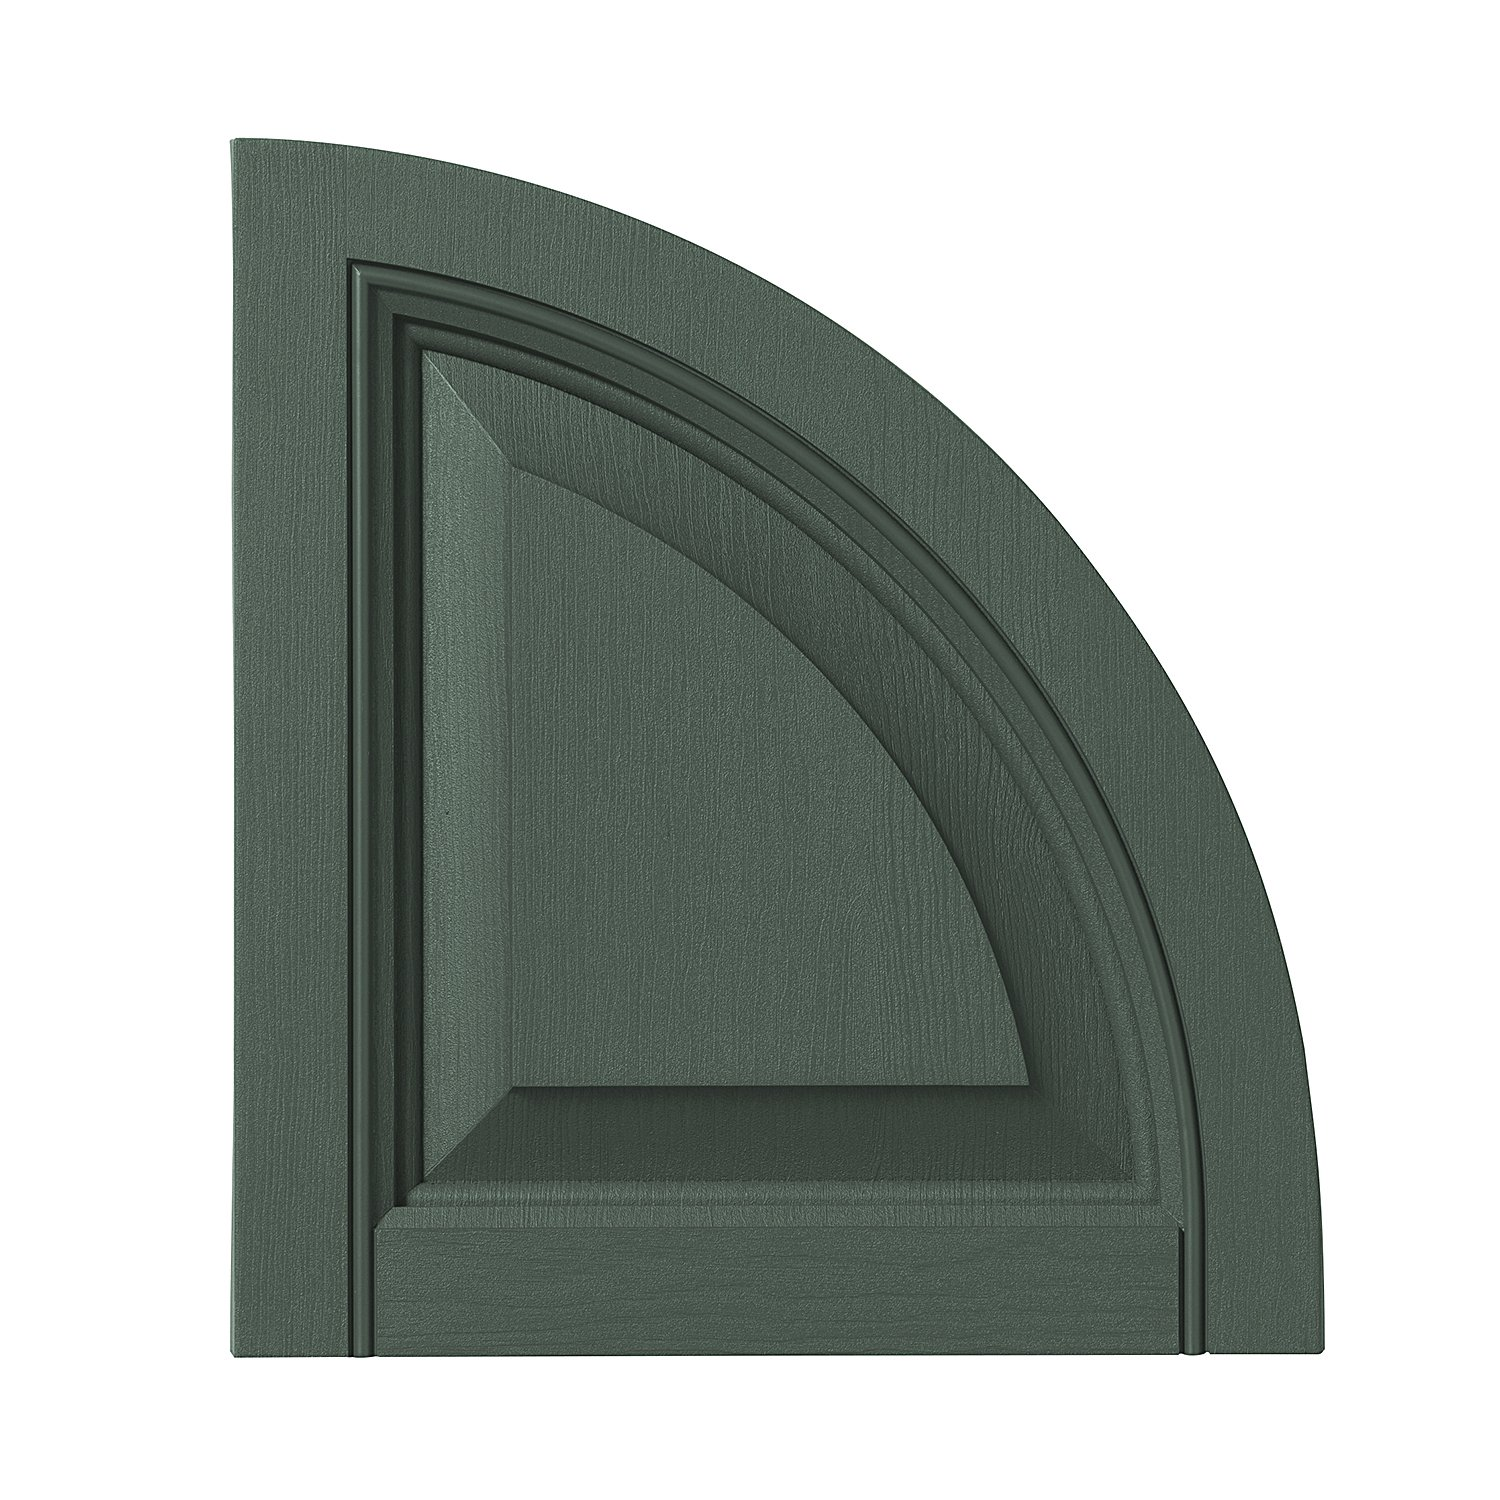 Ply Gem Shutters and Accents ARCH15RP 55 Raised